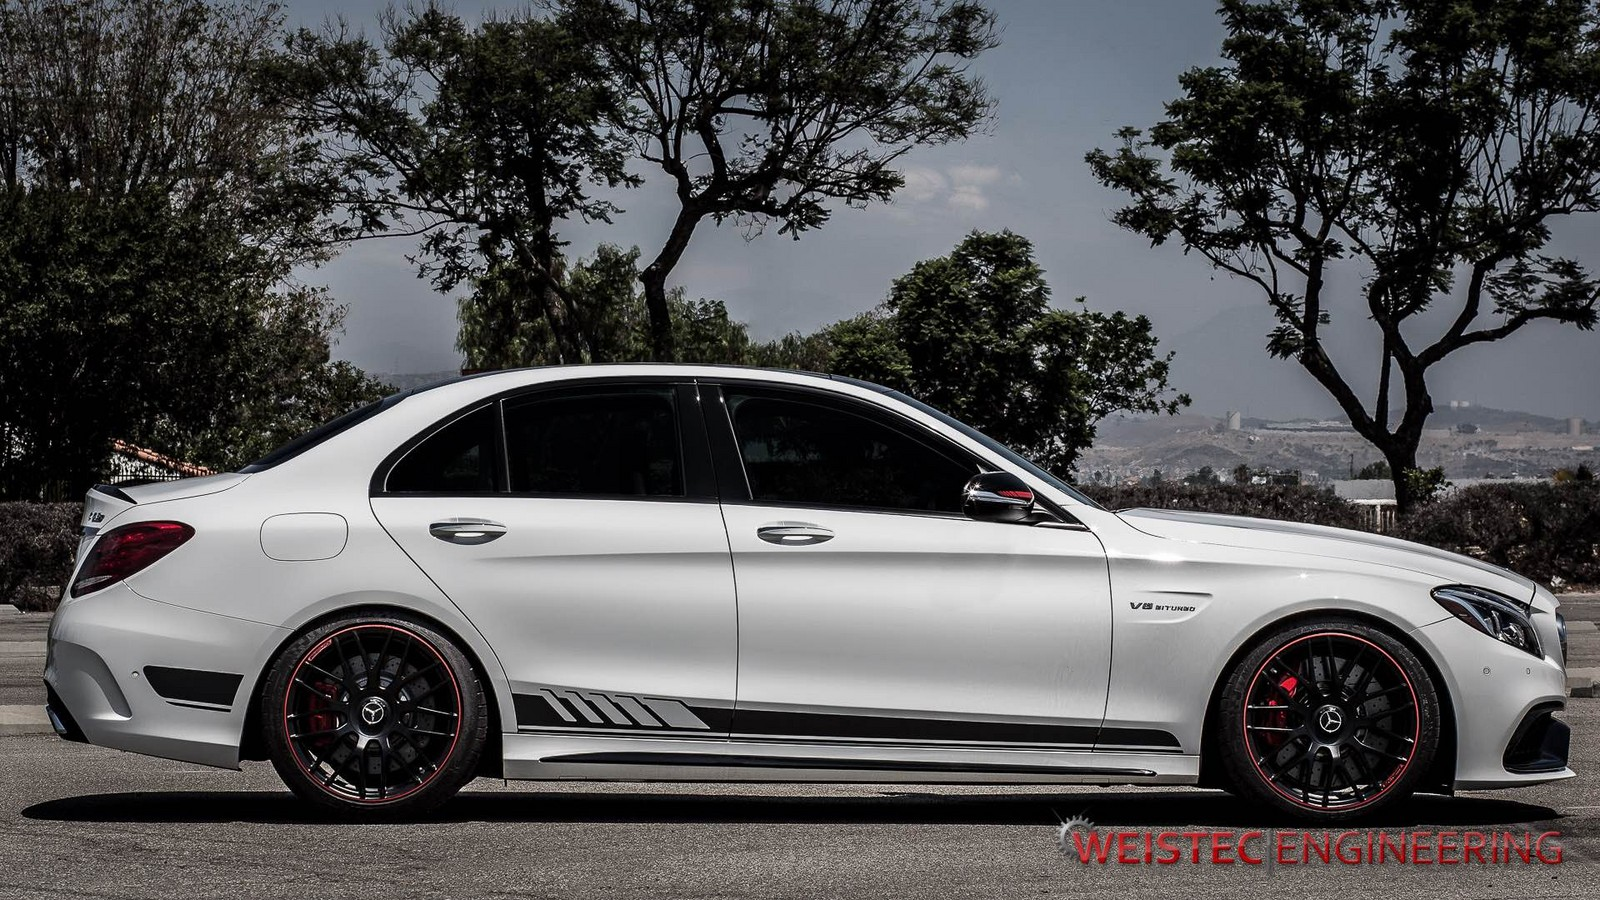 2015 mercedes benz c63 amg w205 weistec 1 4 mile drag for C63 mercedes benz